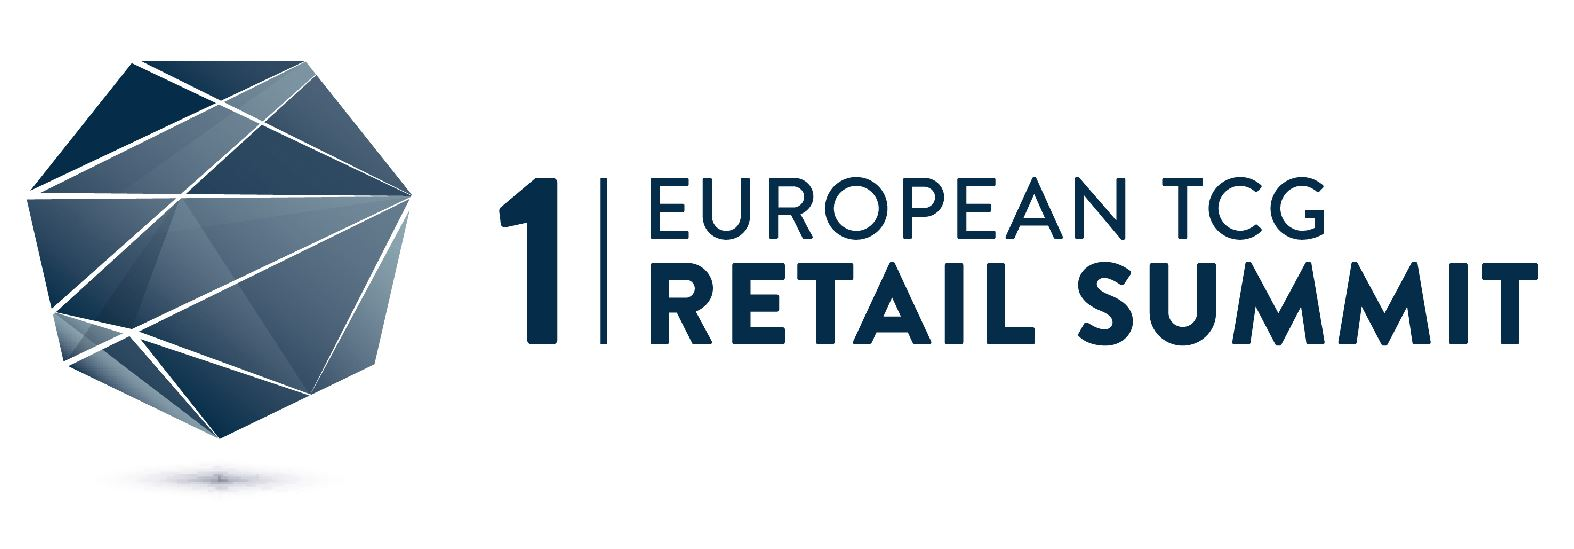 The First European TCG Retail Summit